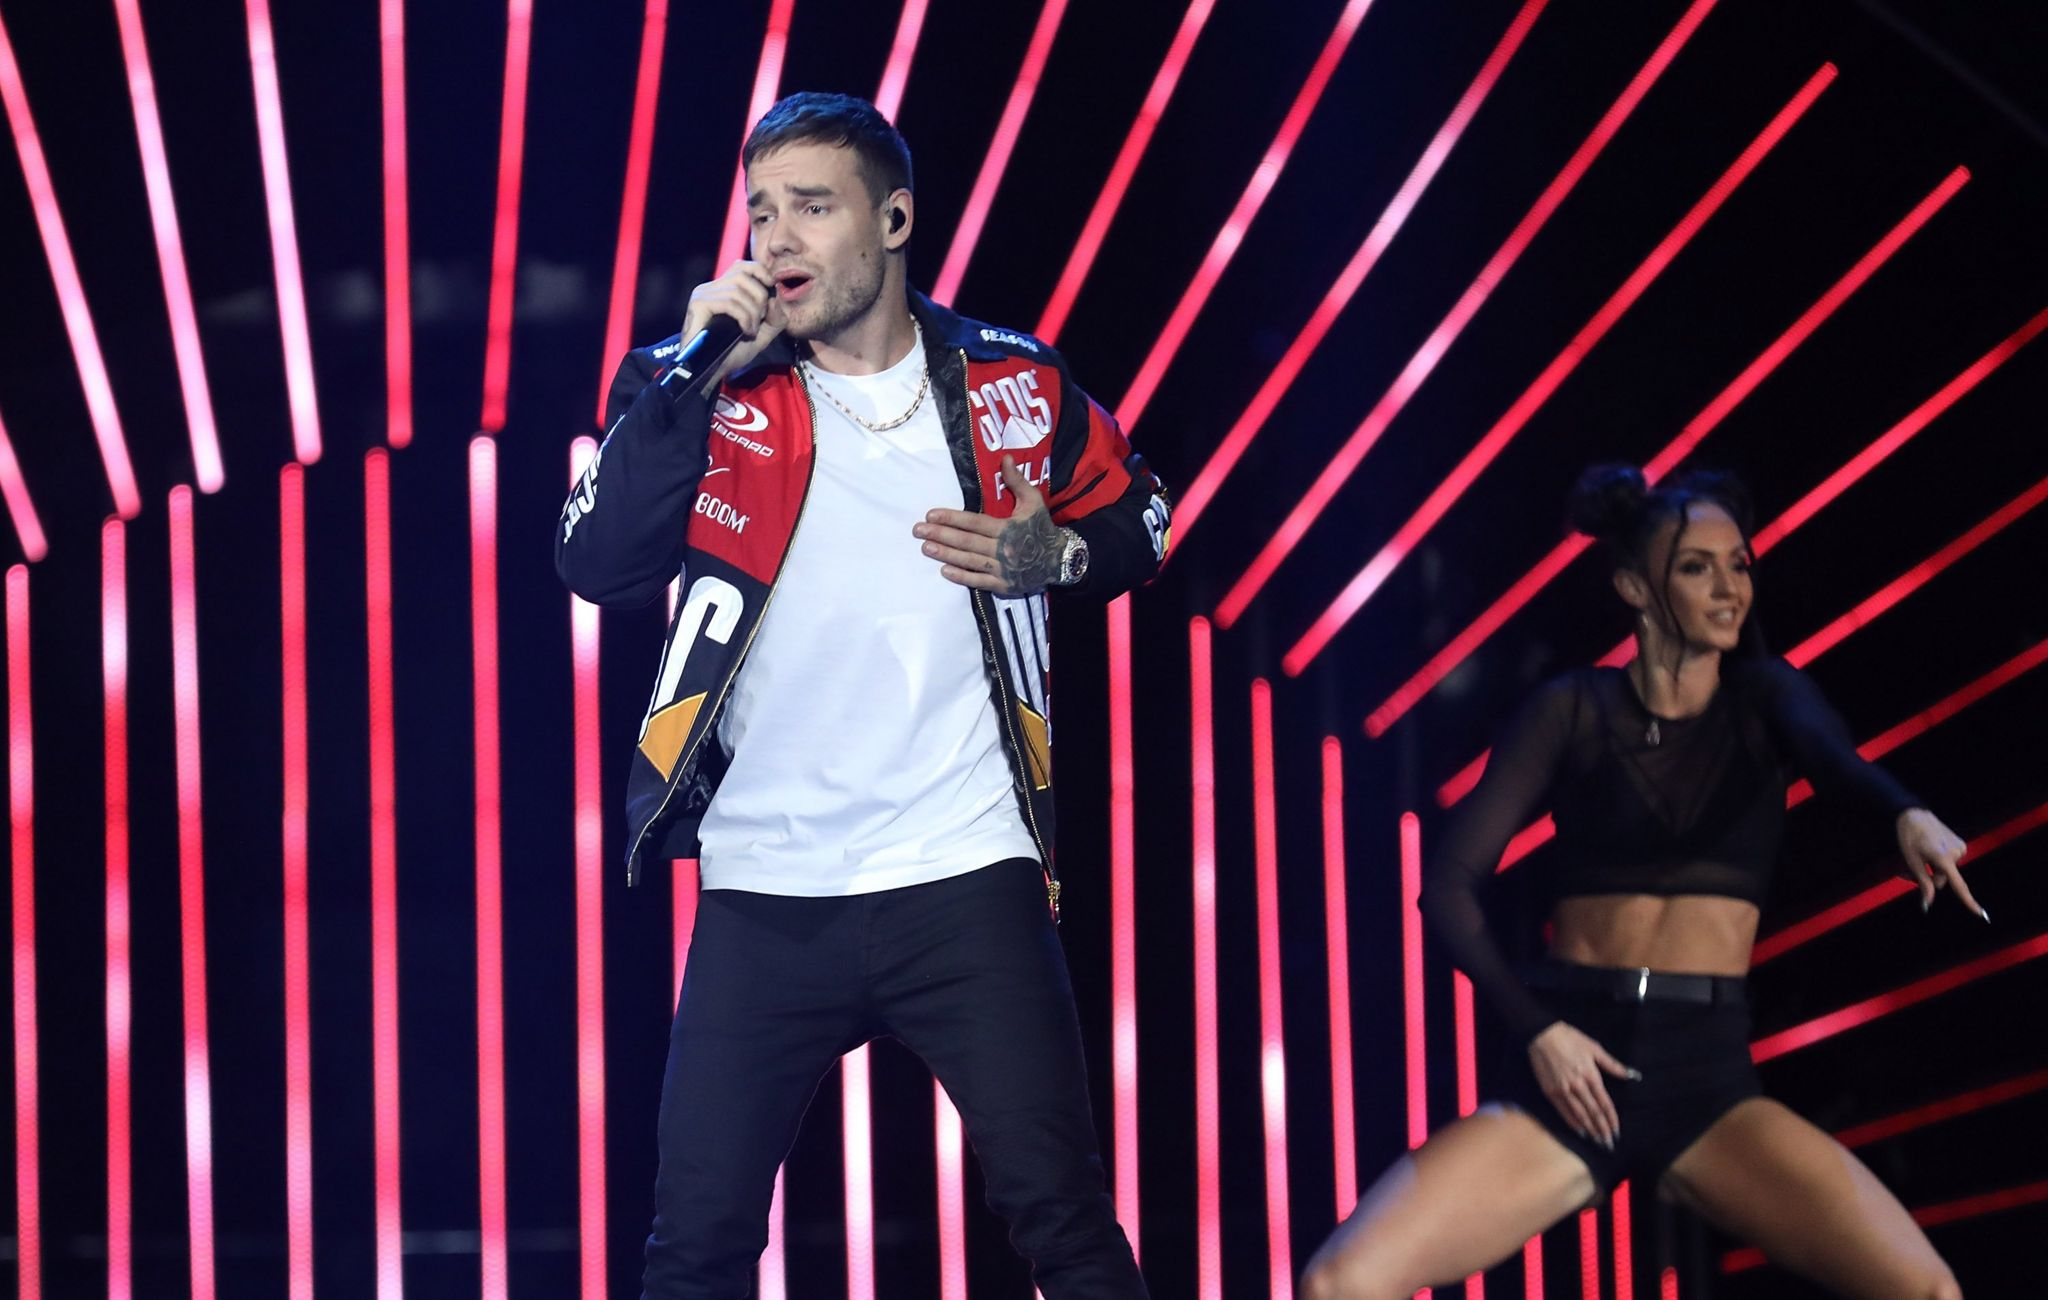 Liam Payne on stage at the BBC's Teen Awards